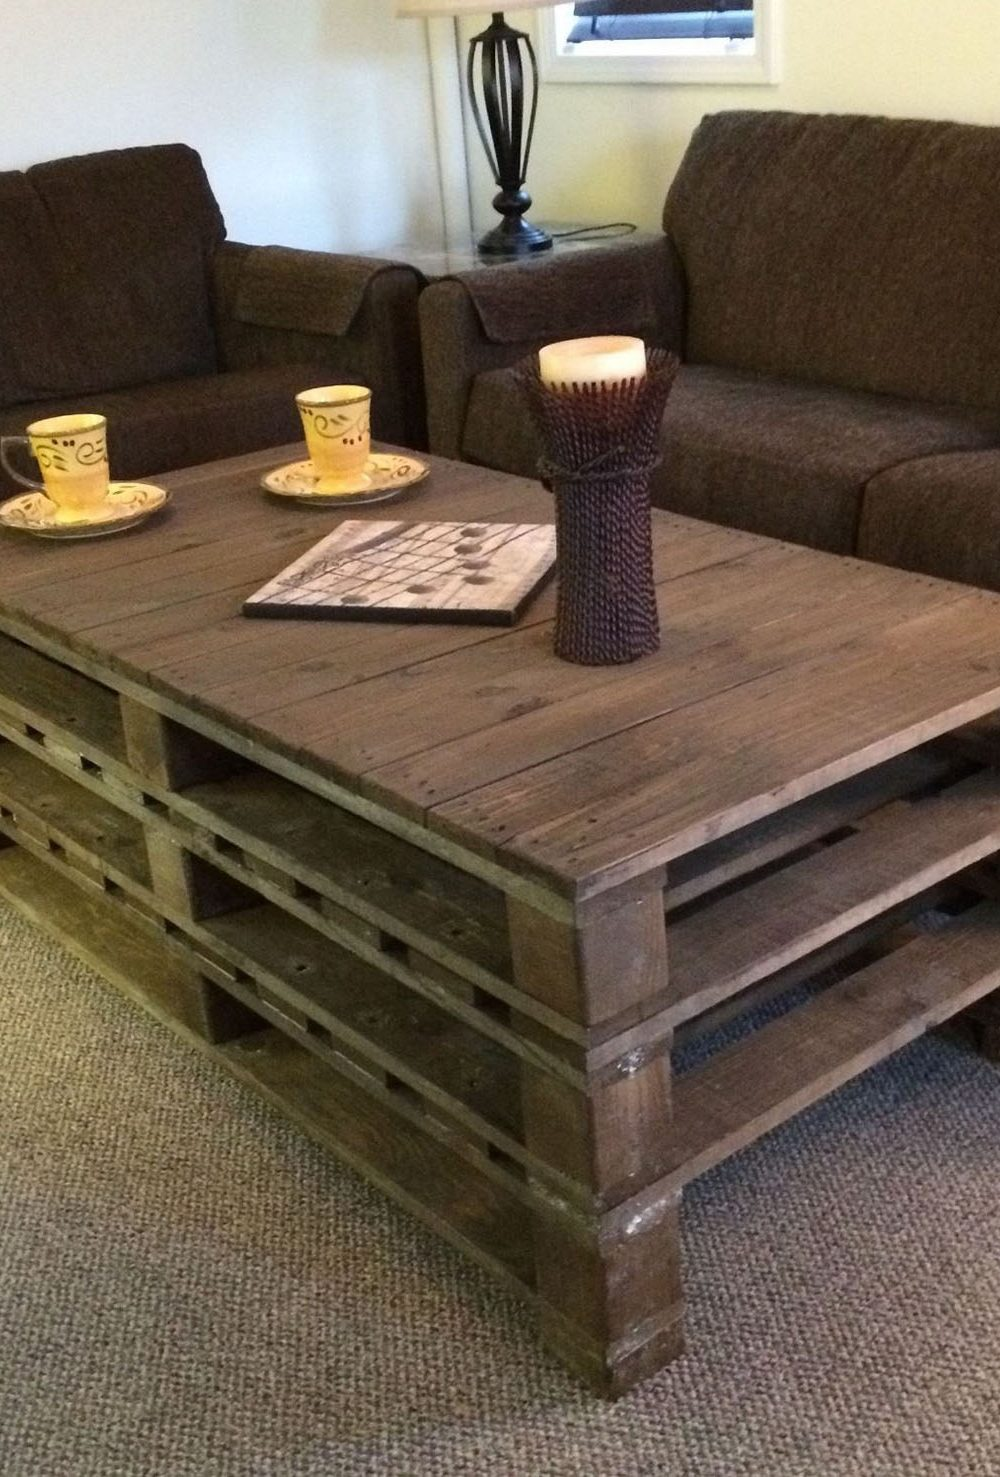 A2b crafts diy crafts upcycling do it yourself furniture using old storage pallets solutioingenieria Image collections